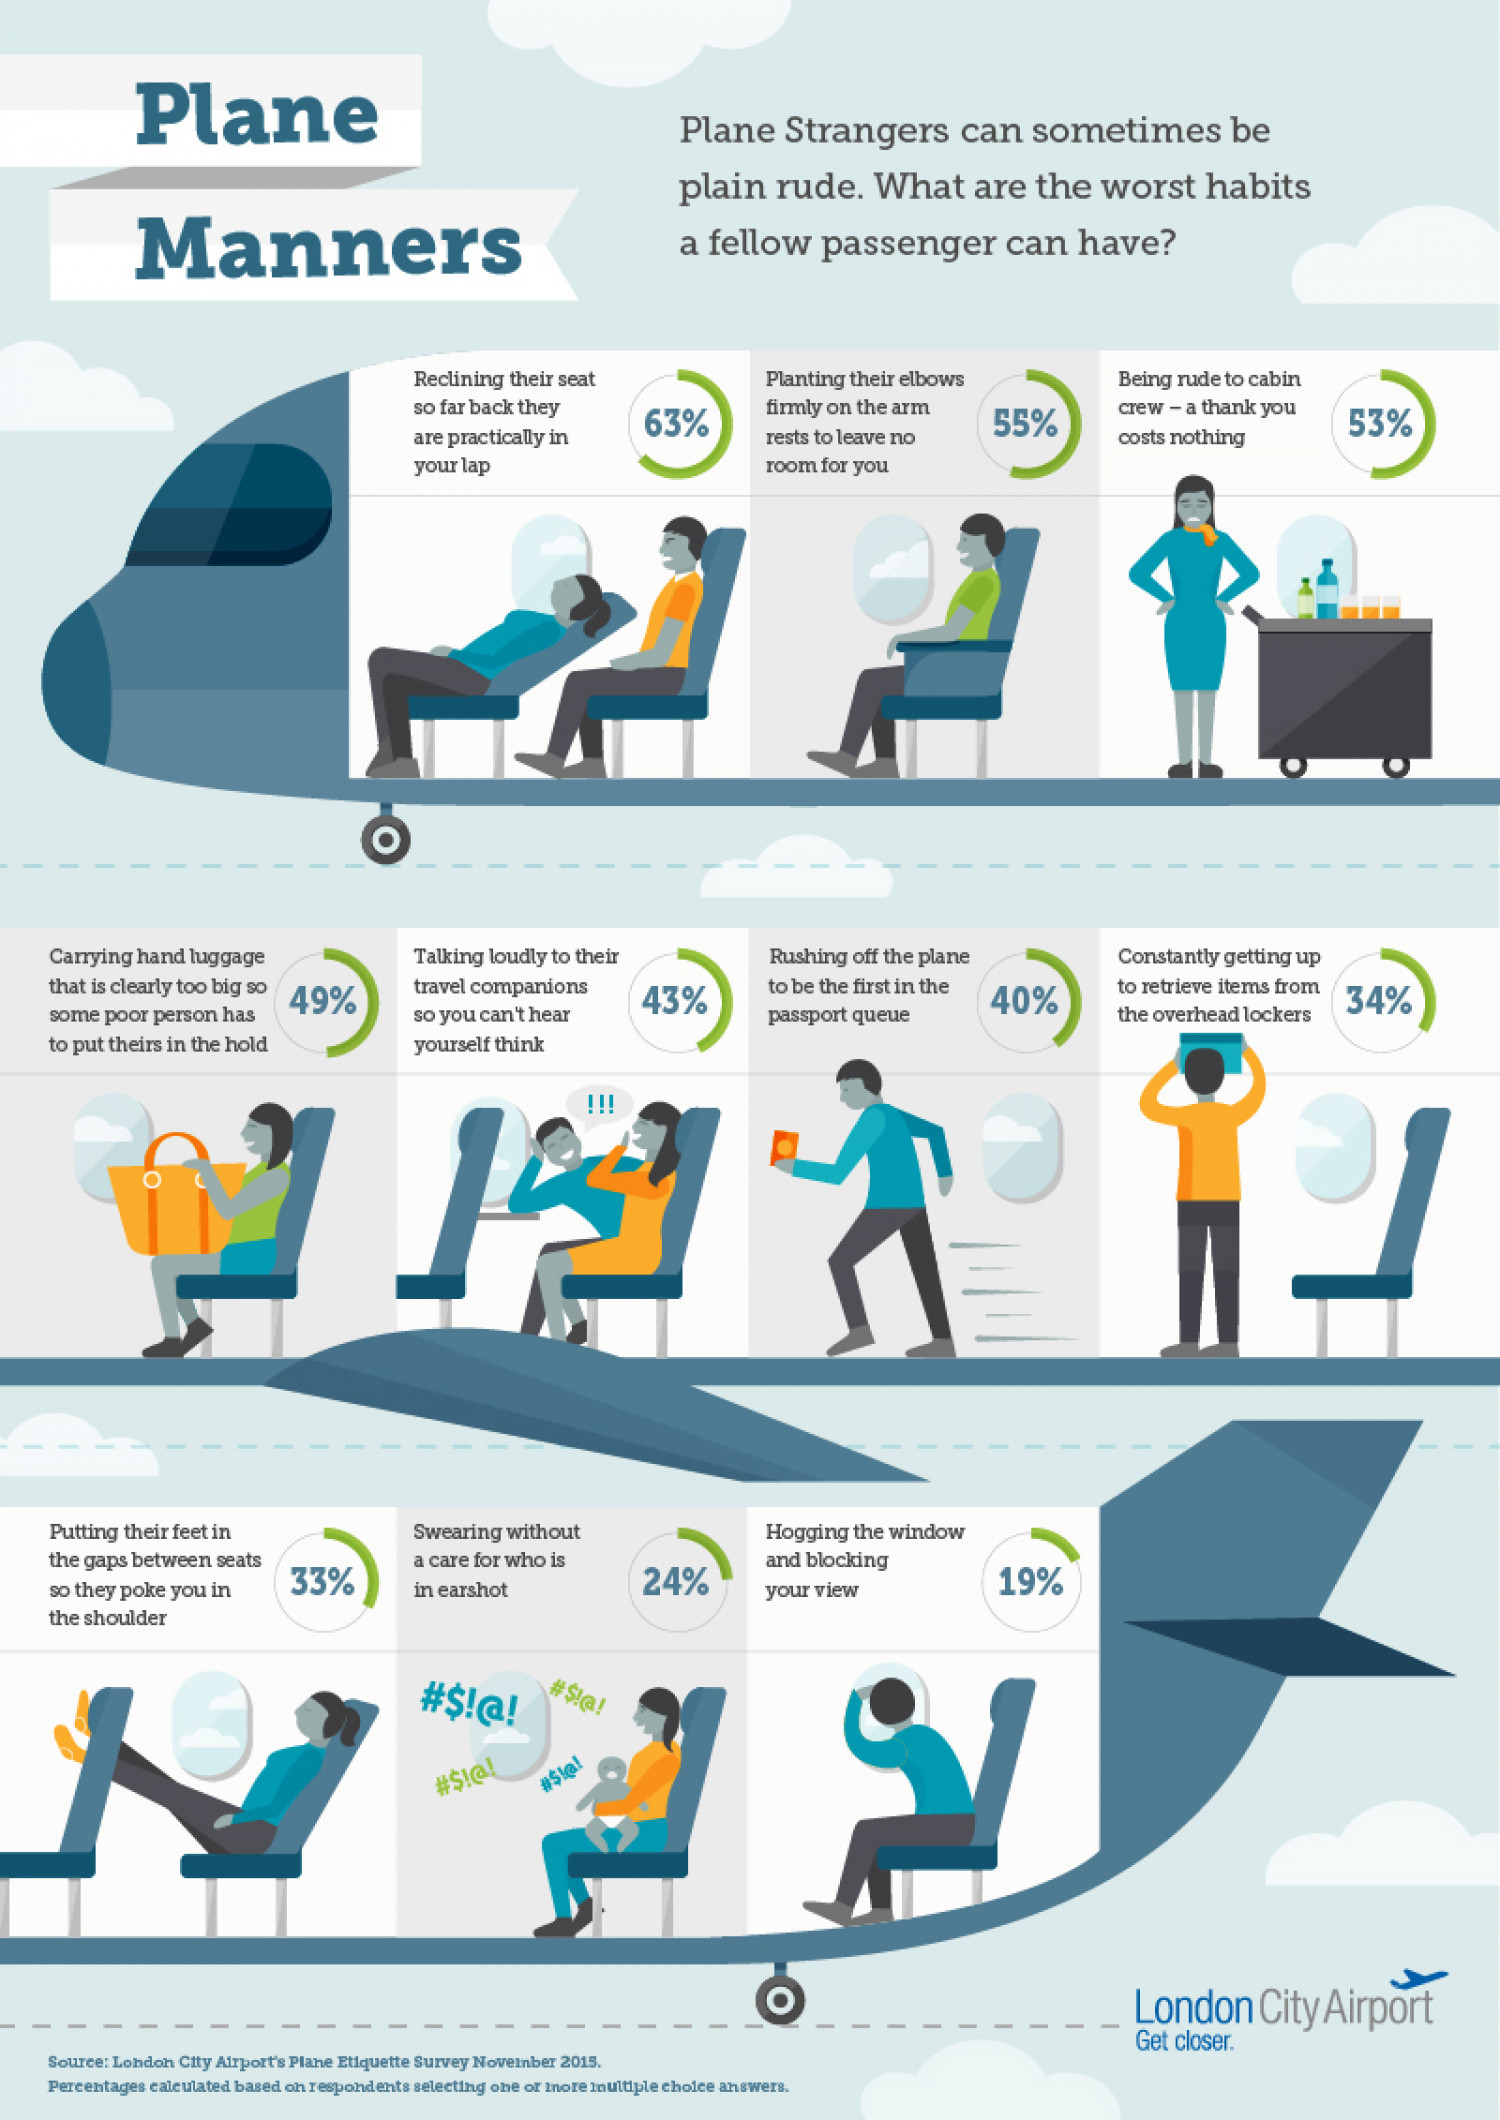 London City Airport: Plane Manners Infographic